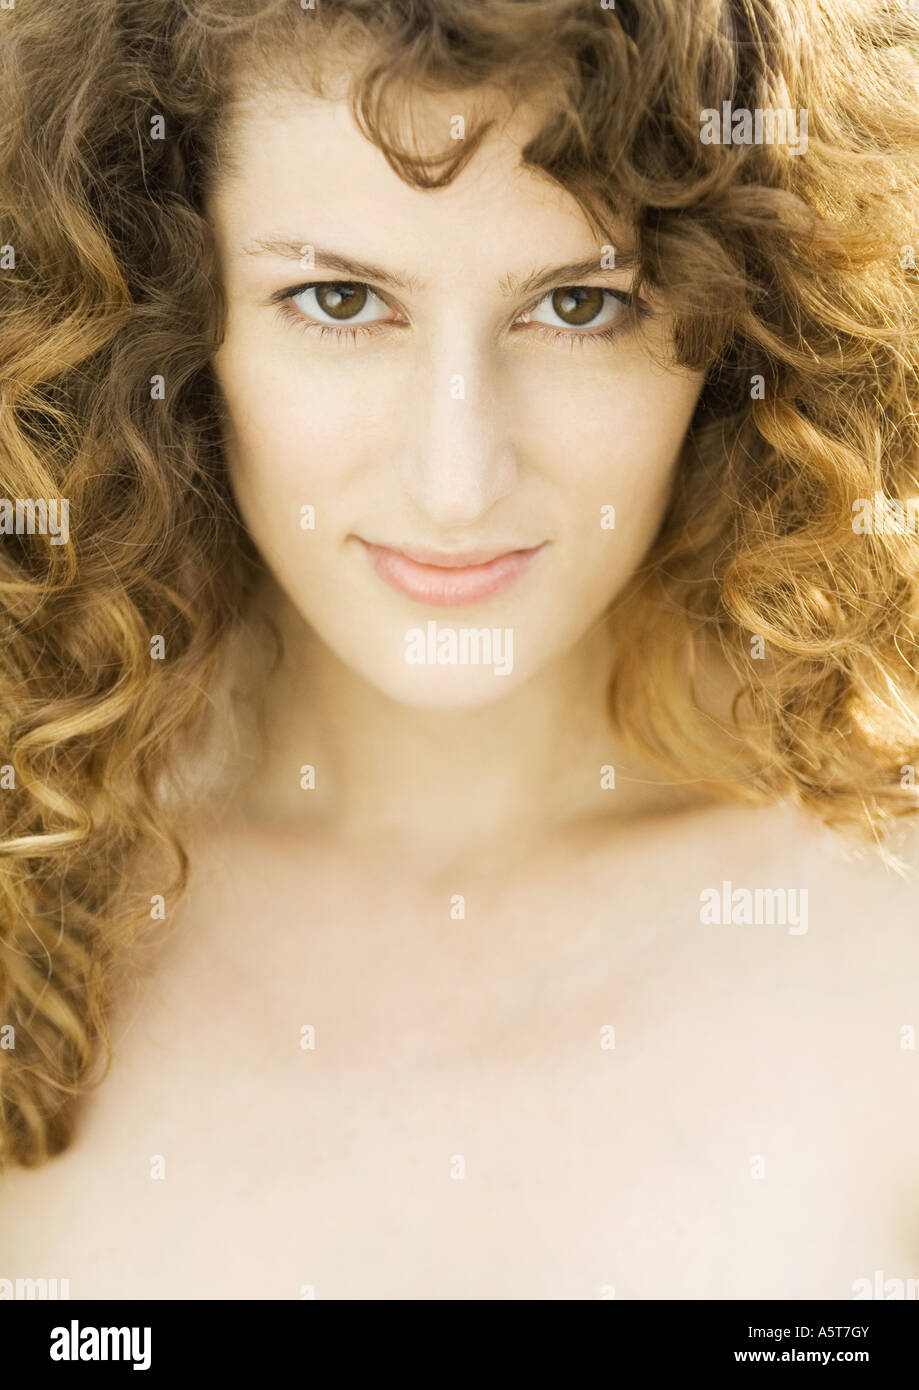 Woman, head and shoulders, close-up - Stock Image